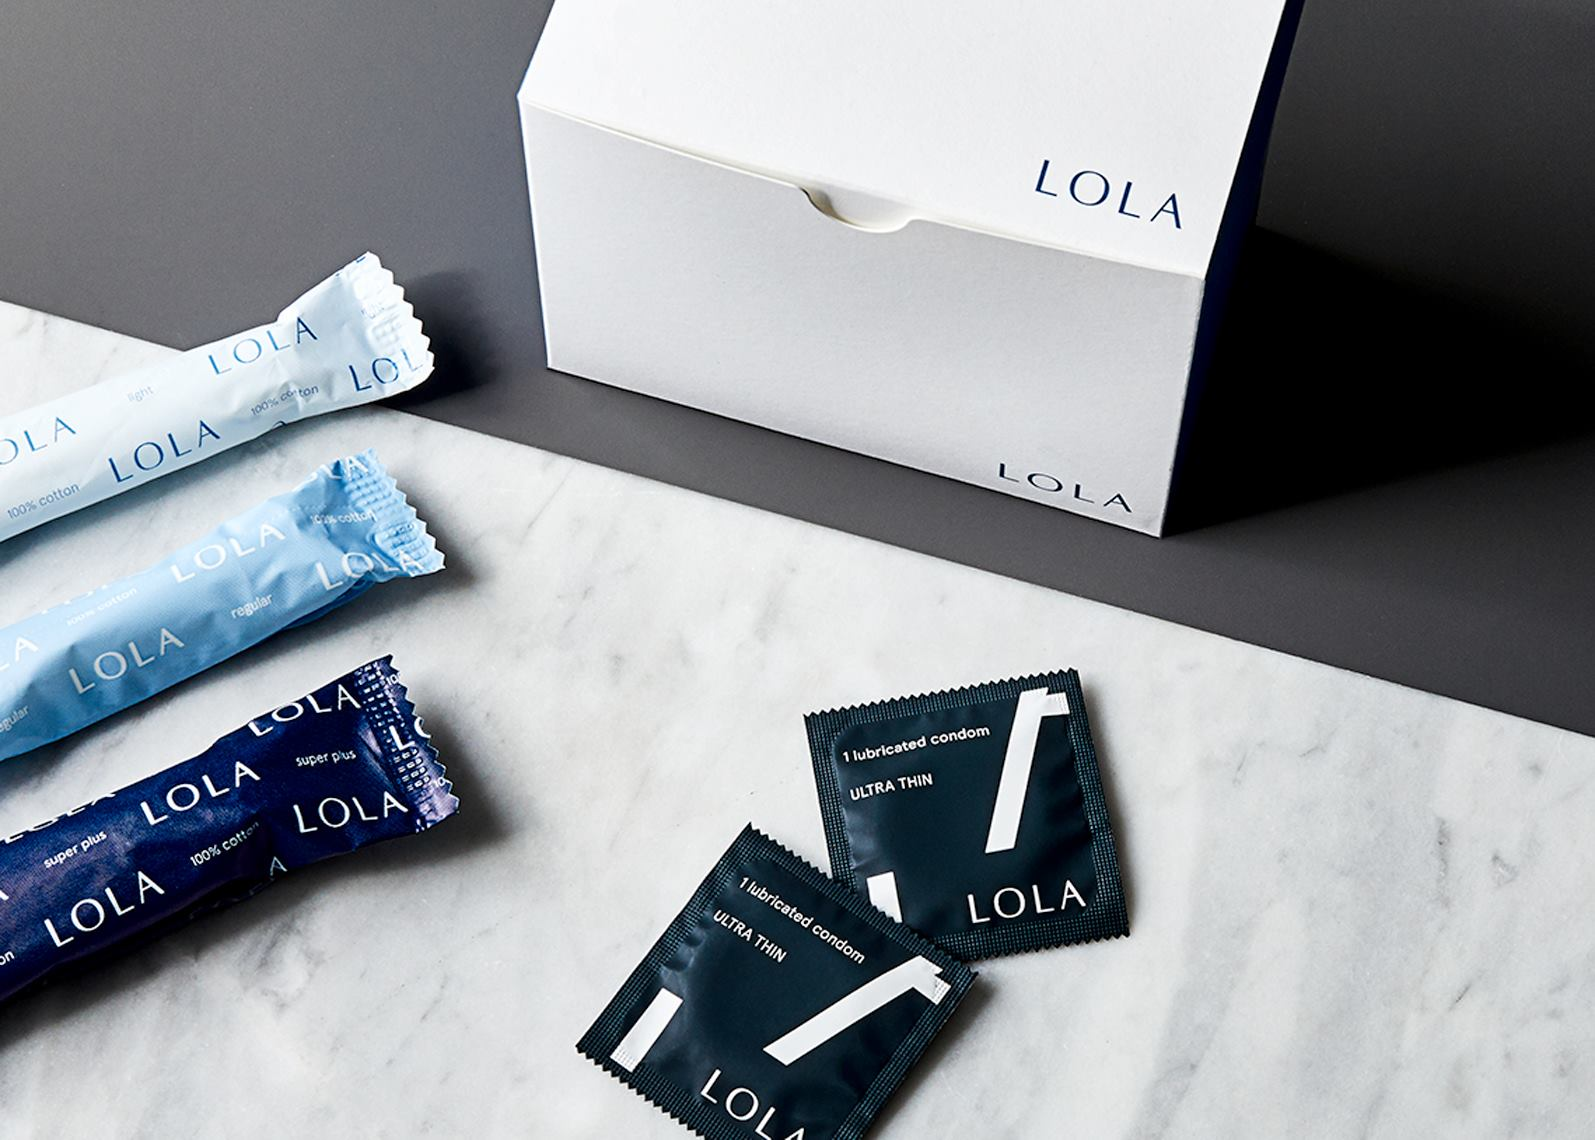 About LOLA Homepage